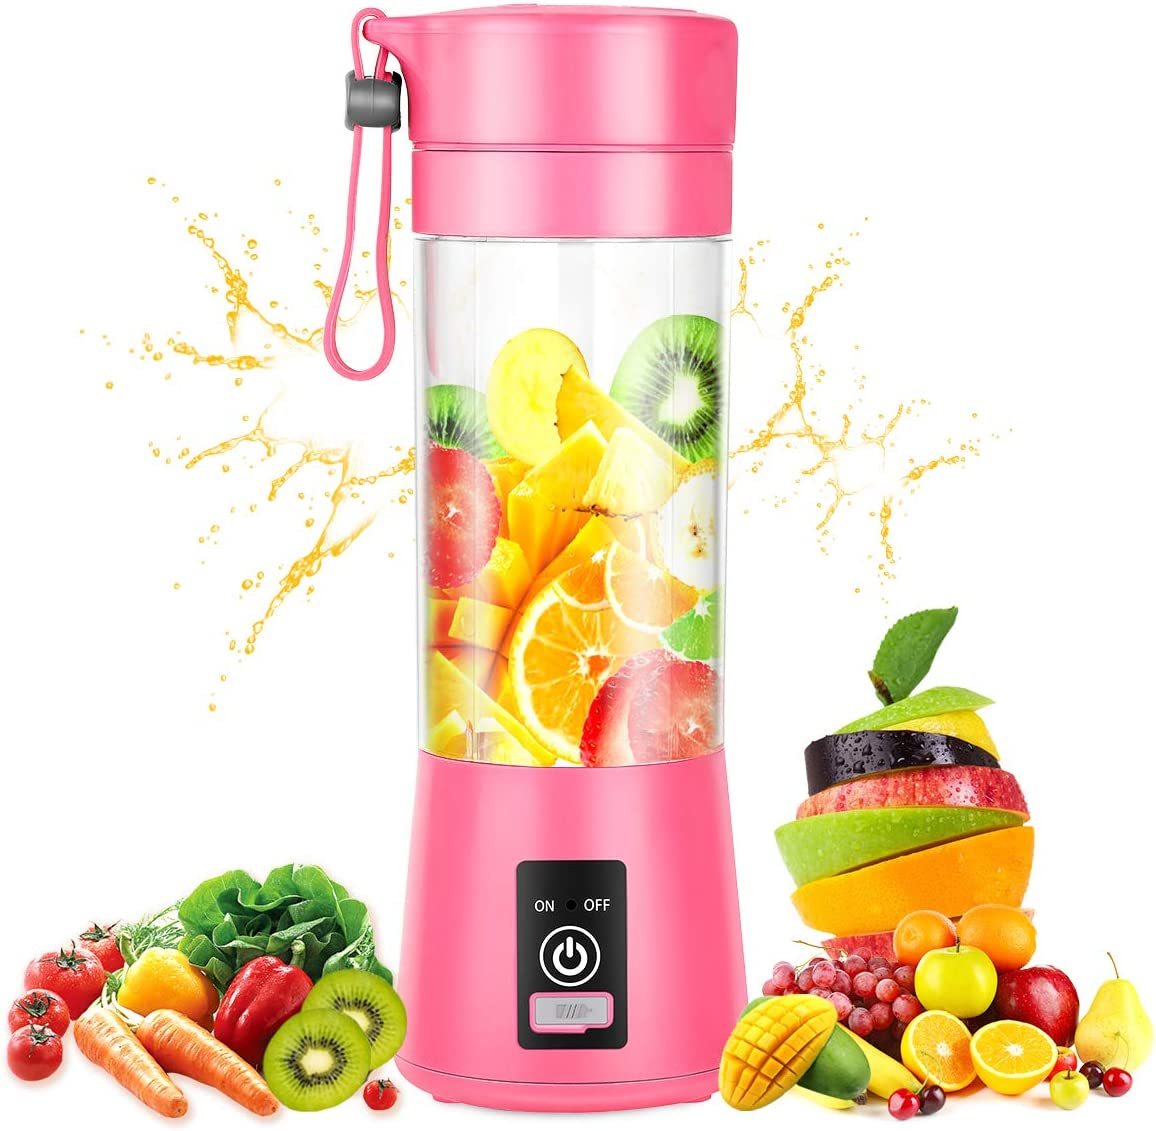 Portable Blender,Personal Blender with USB Rechargeable Mini Fruit Juice Mixer,Personal Size Blender for Smoothies and Shakes Mini Juicer Cup Travel 380ML(Pink)